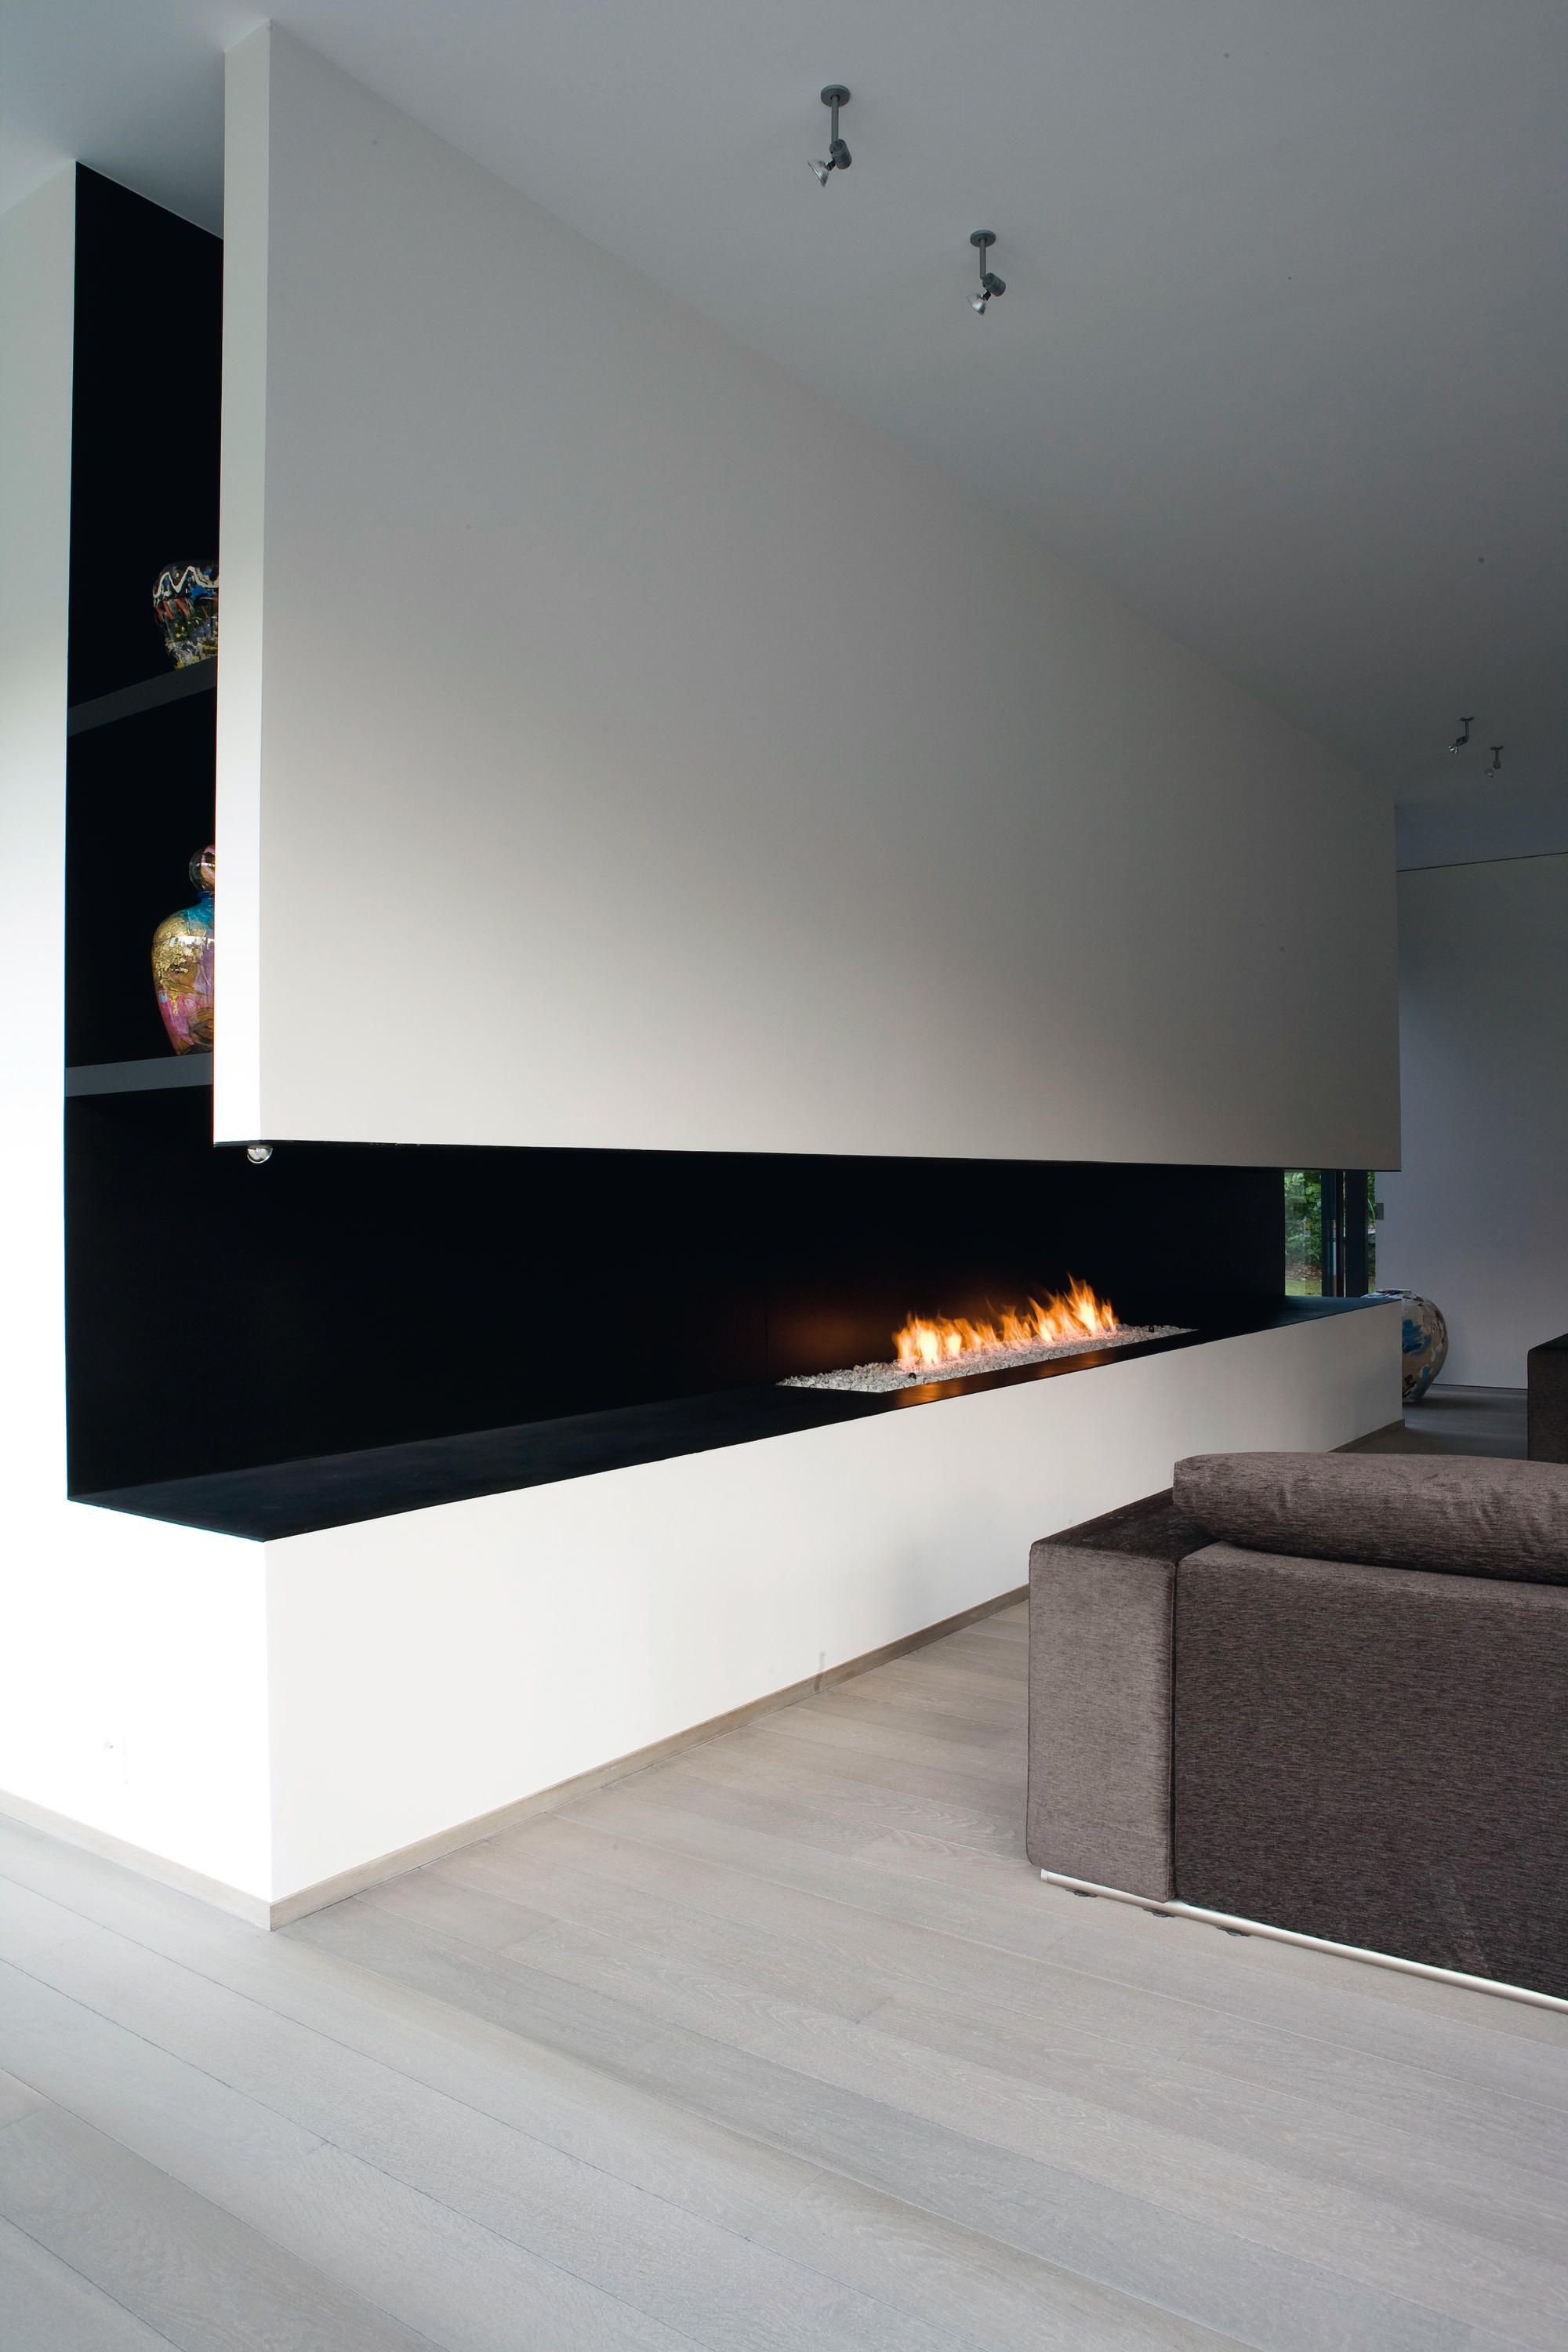 Design And Technology Metalfireu0027s Gas Burning Open Fireplaces Bring A  Minimalistic Design Fitted With An Intelligent Protection. They Couple Taut.